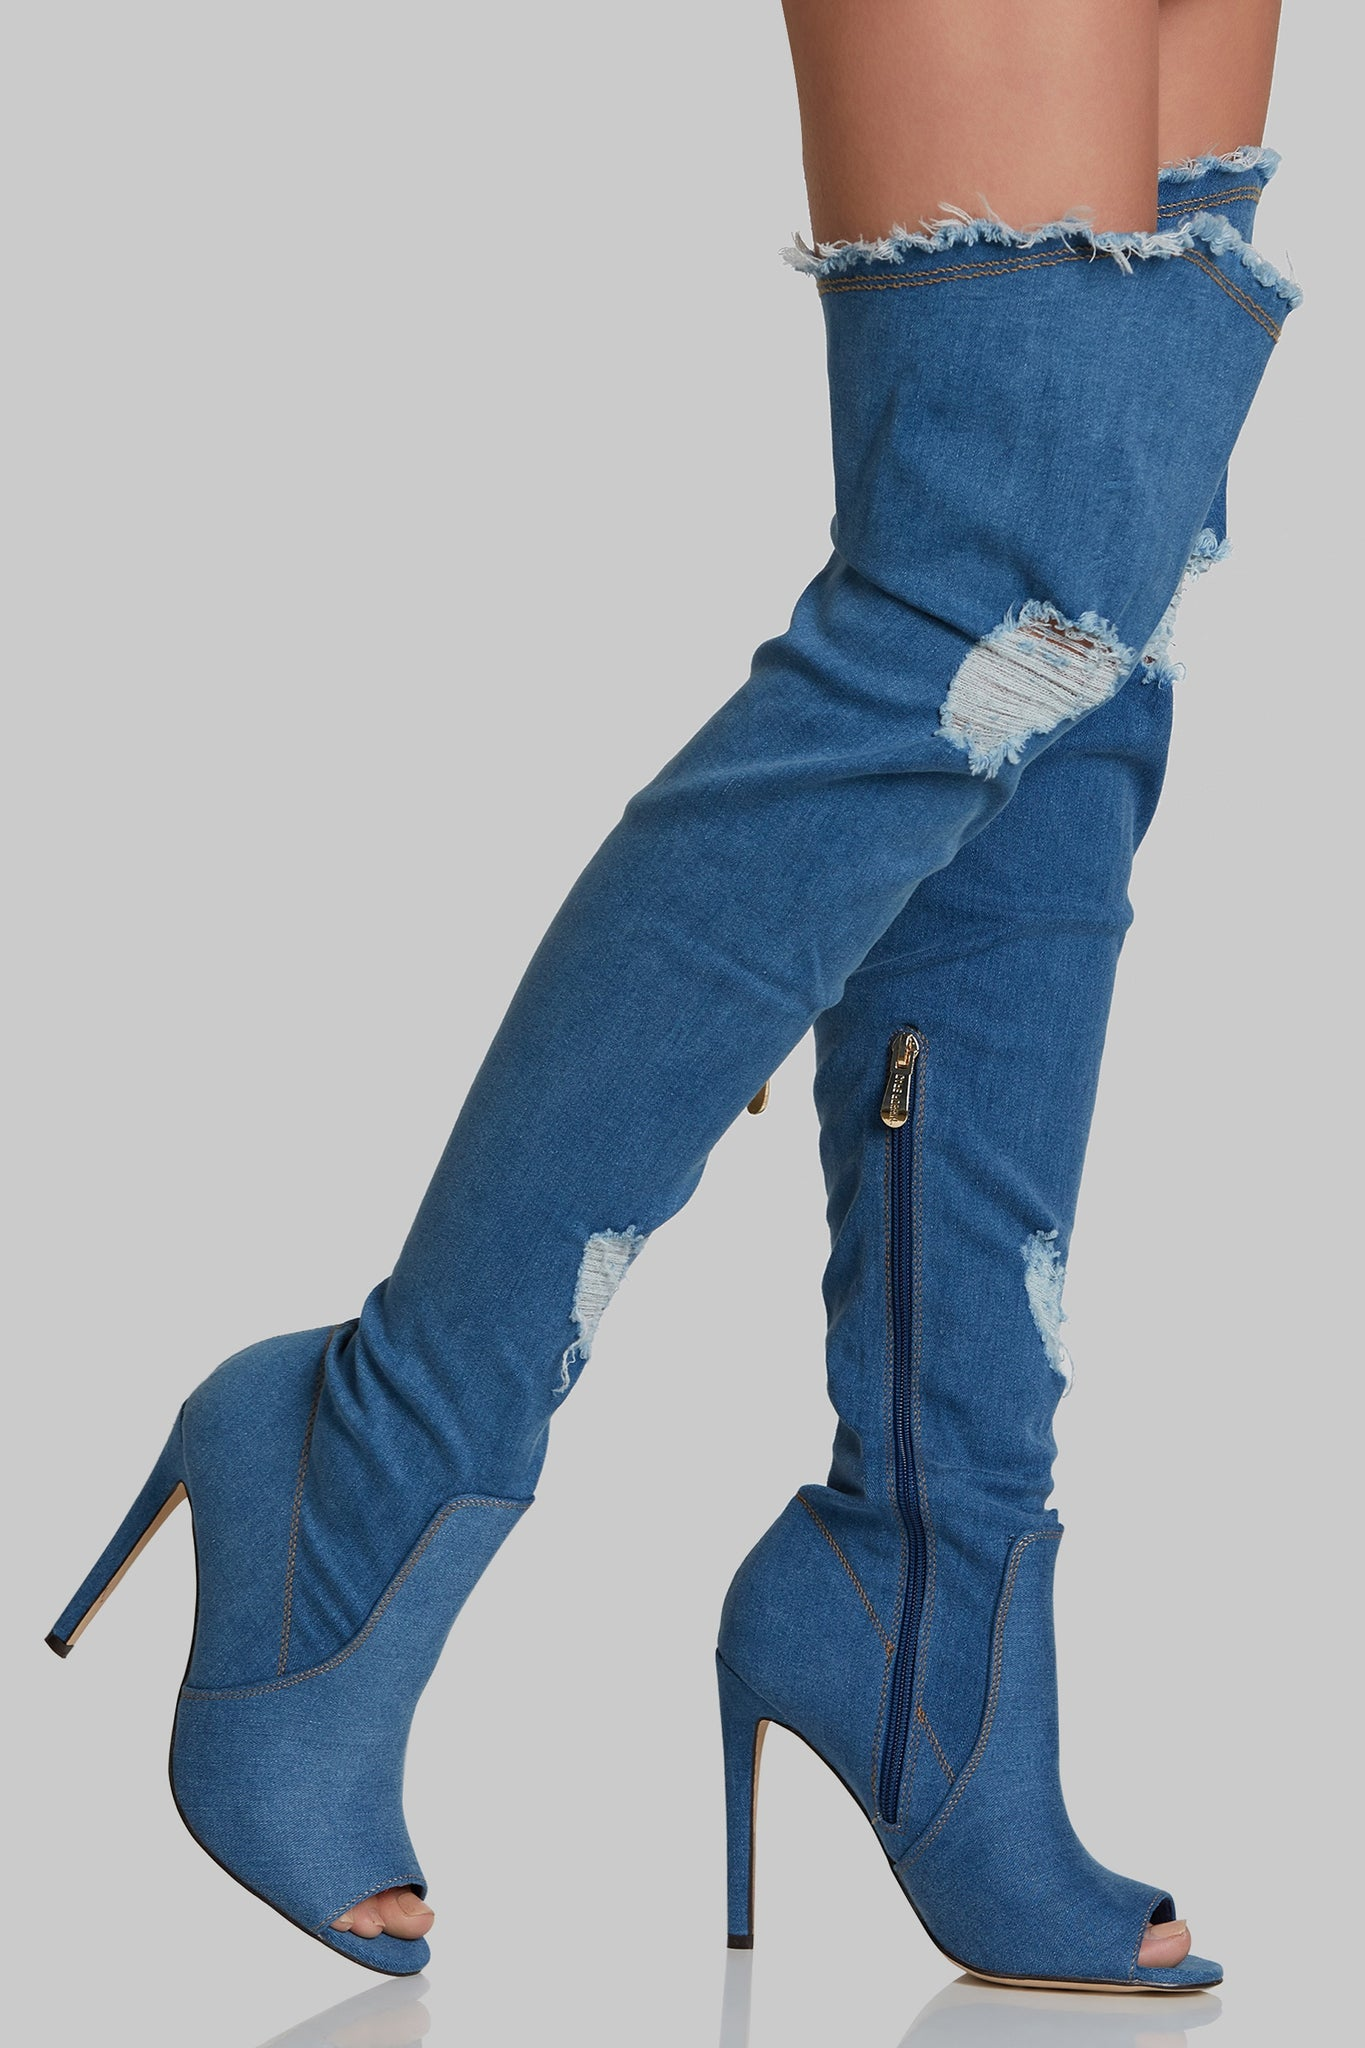 Kimmie Denim Thigh High Boots